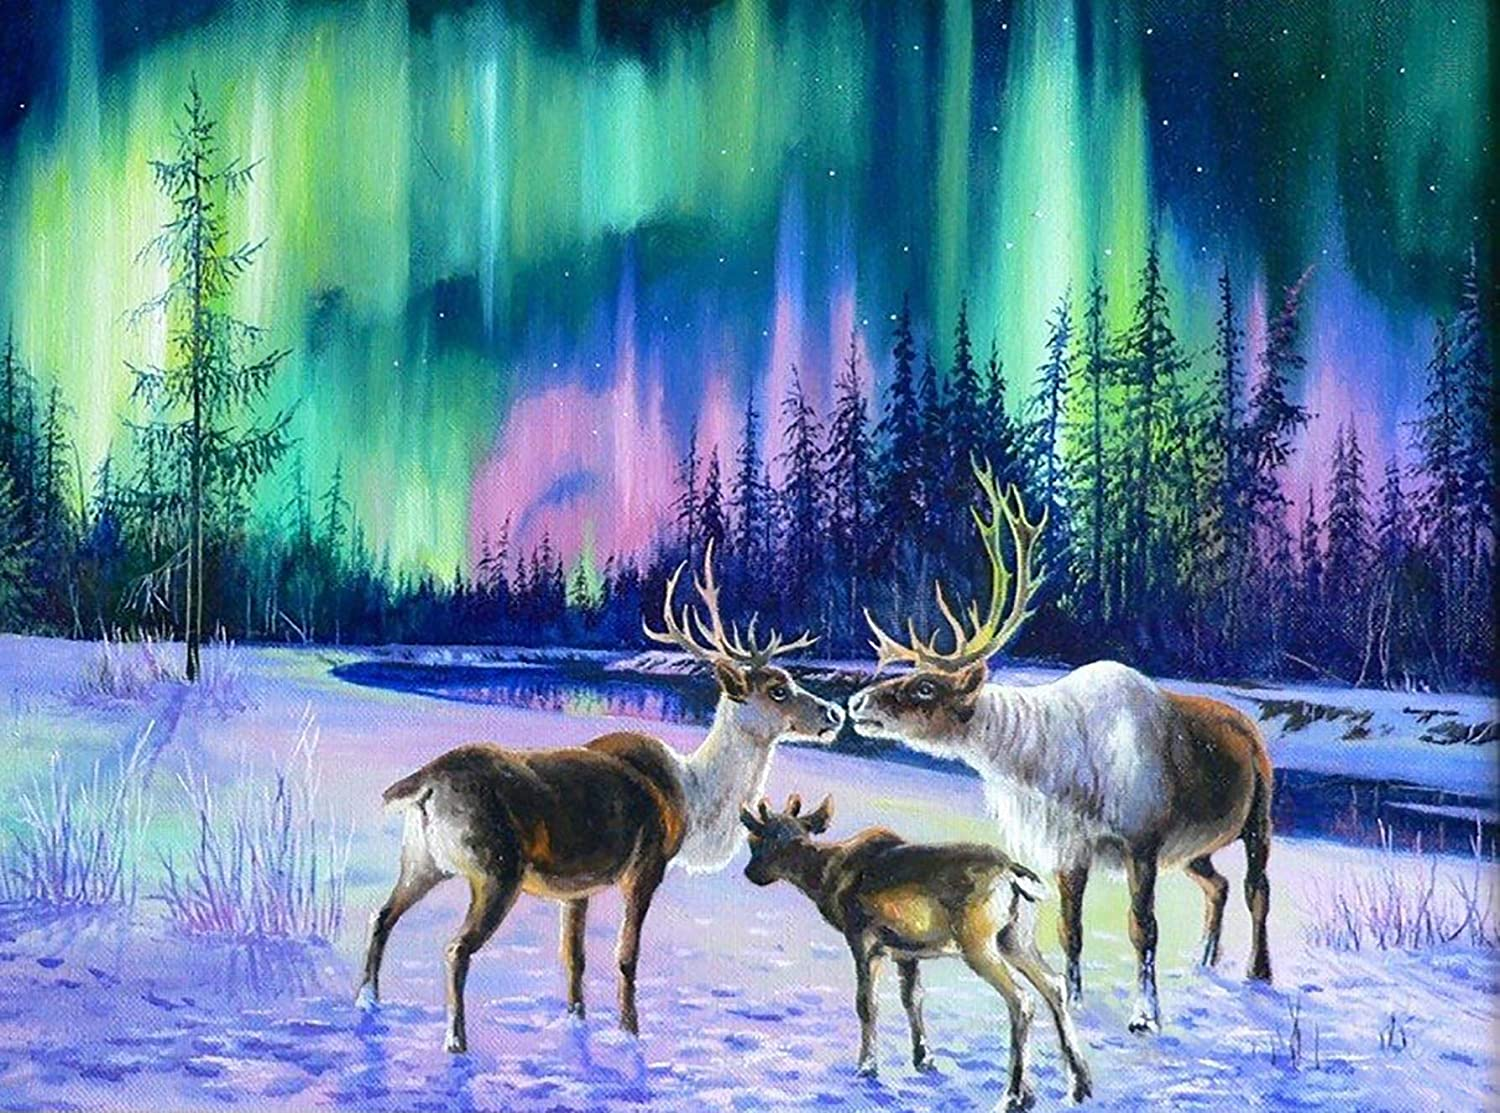 Bimkole DIY 5D Diamond Painting Kit Aurora Deer by Number Kits Paint with Diamonds Arts DIY for Home Decor, 16x20 inch(m4-566)